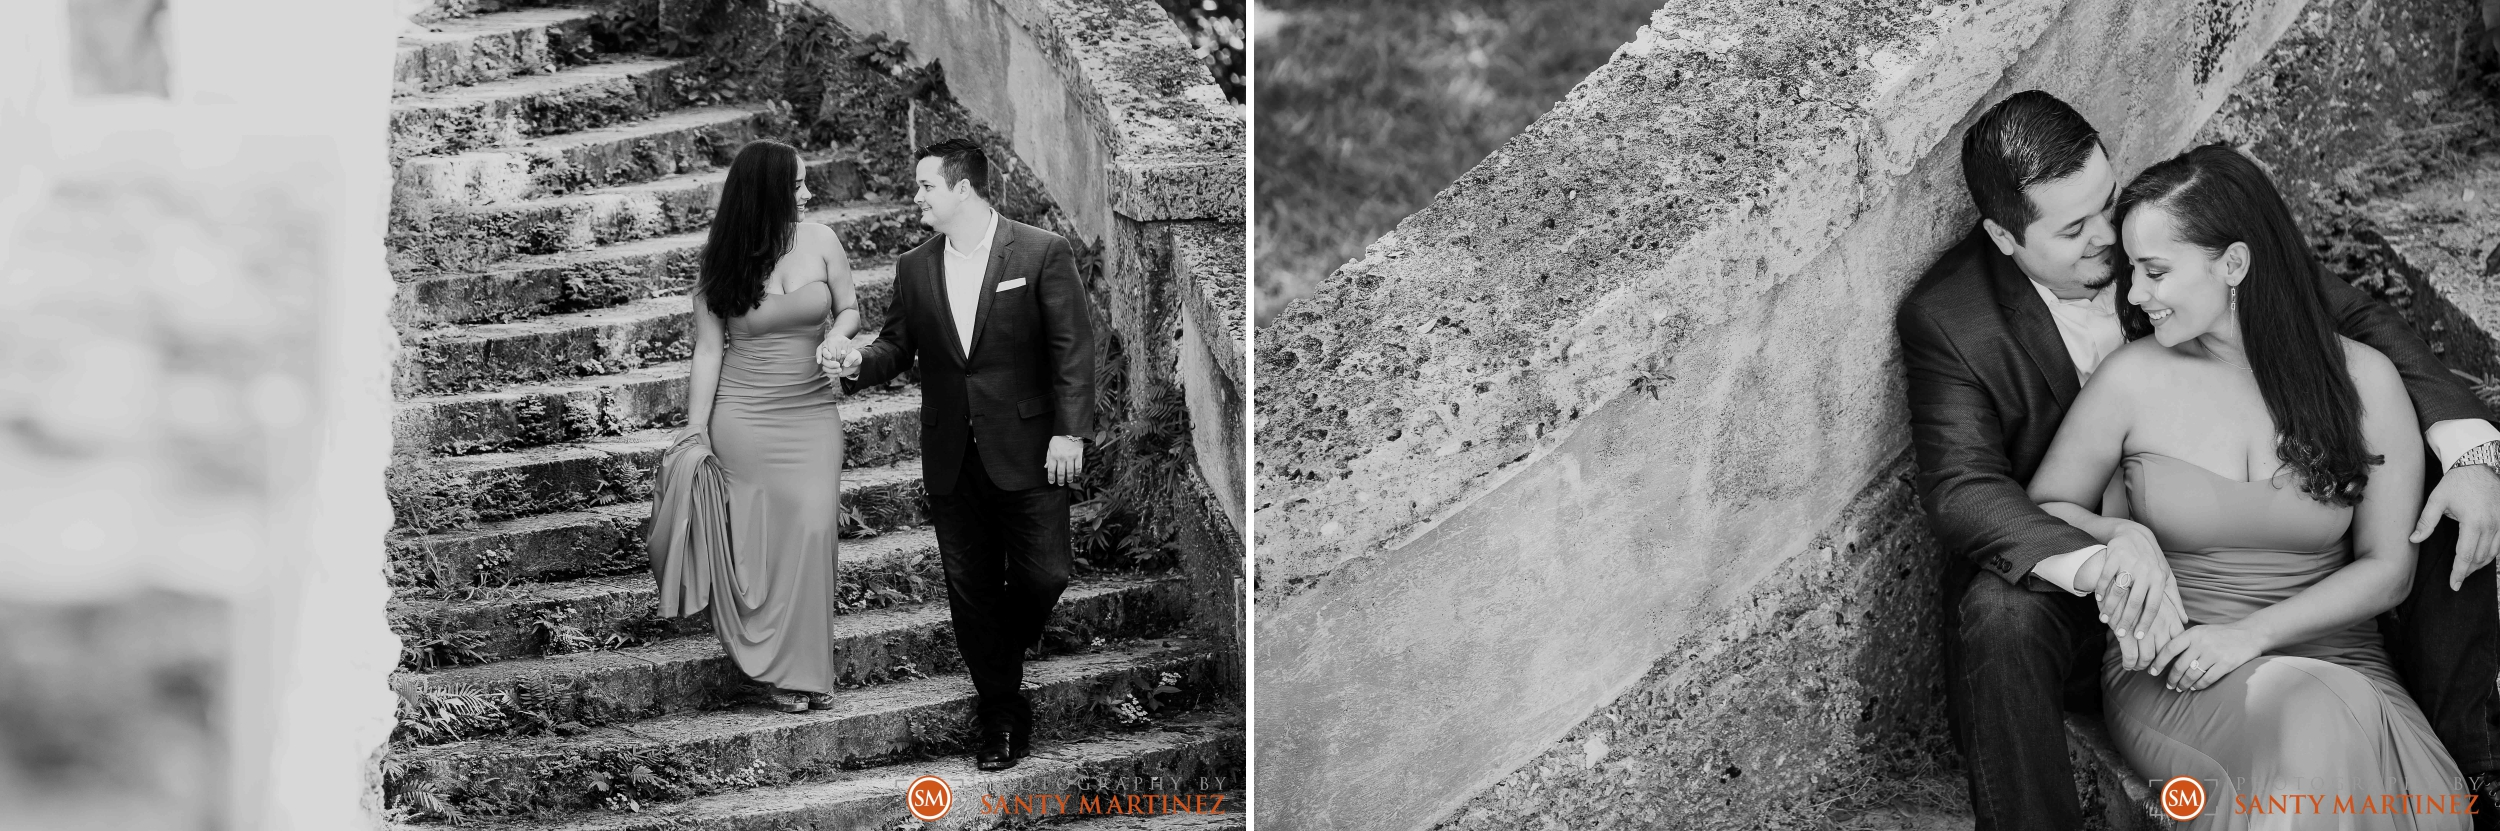 Vizcaya Engagement Session - Miami - Photography by Santy Martinez 2.jpg